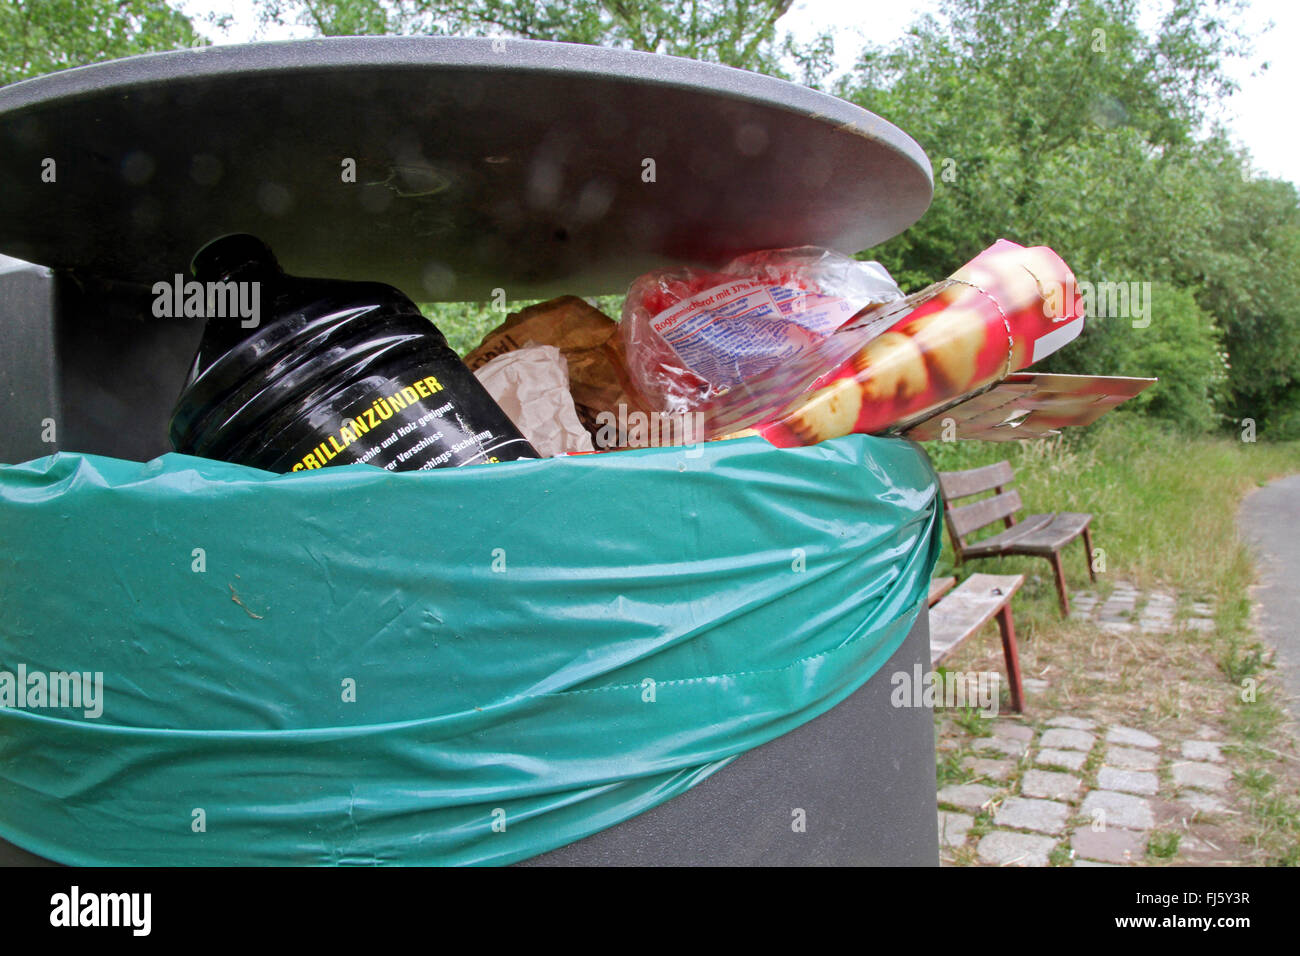 dustbin with charcoal lighter in a nature reserve, Germany - Stock Image